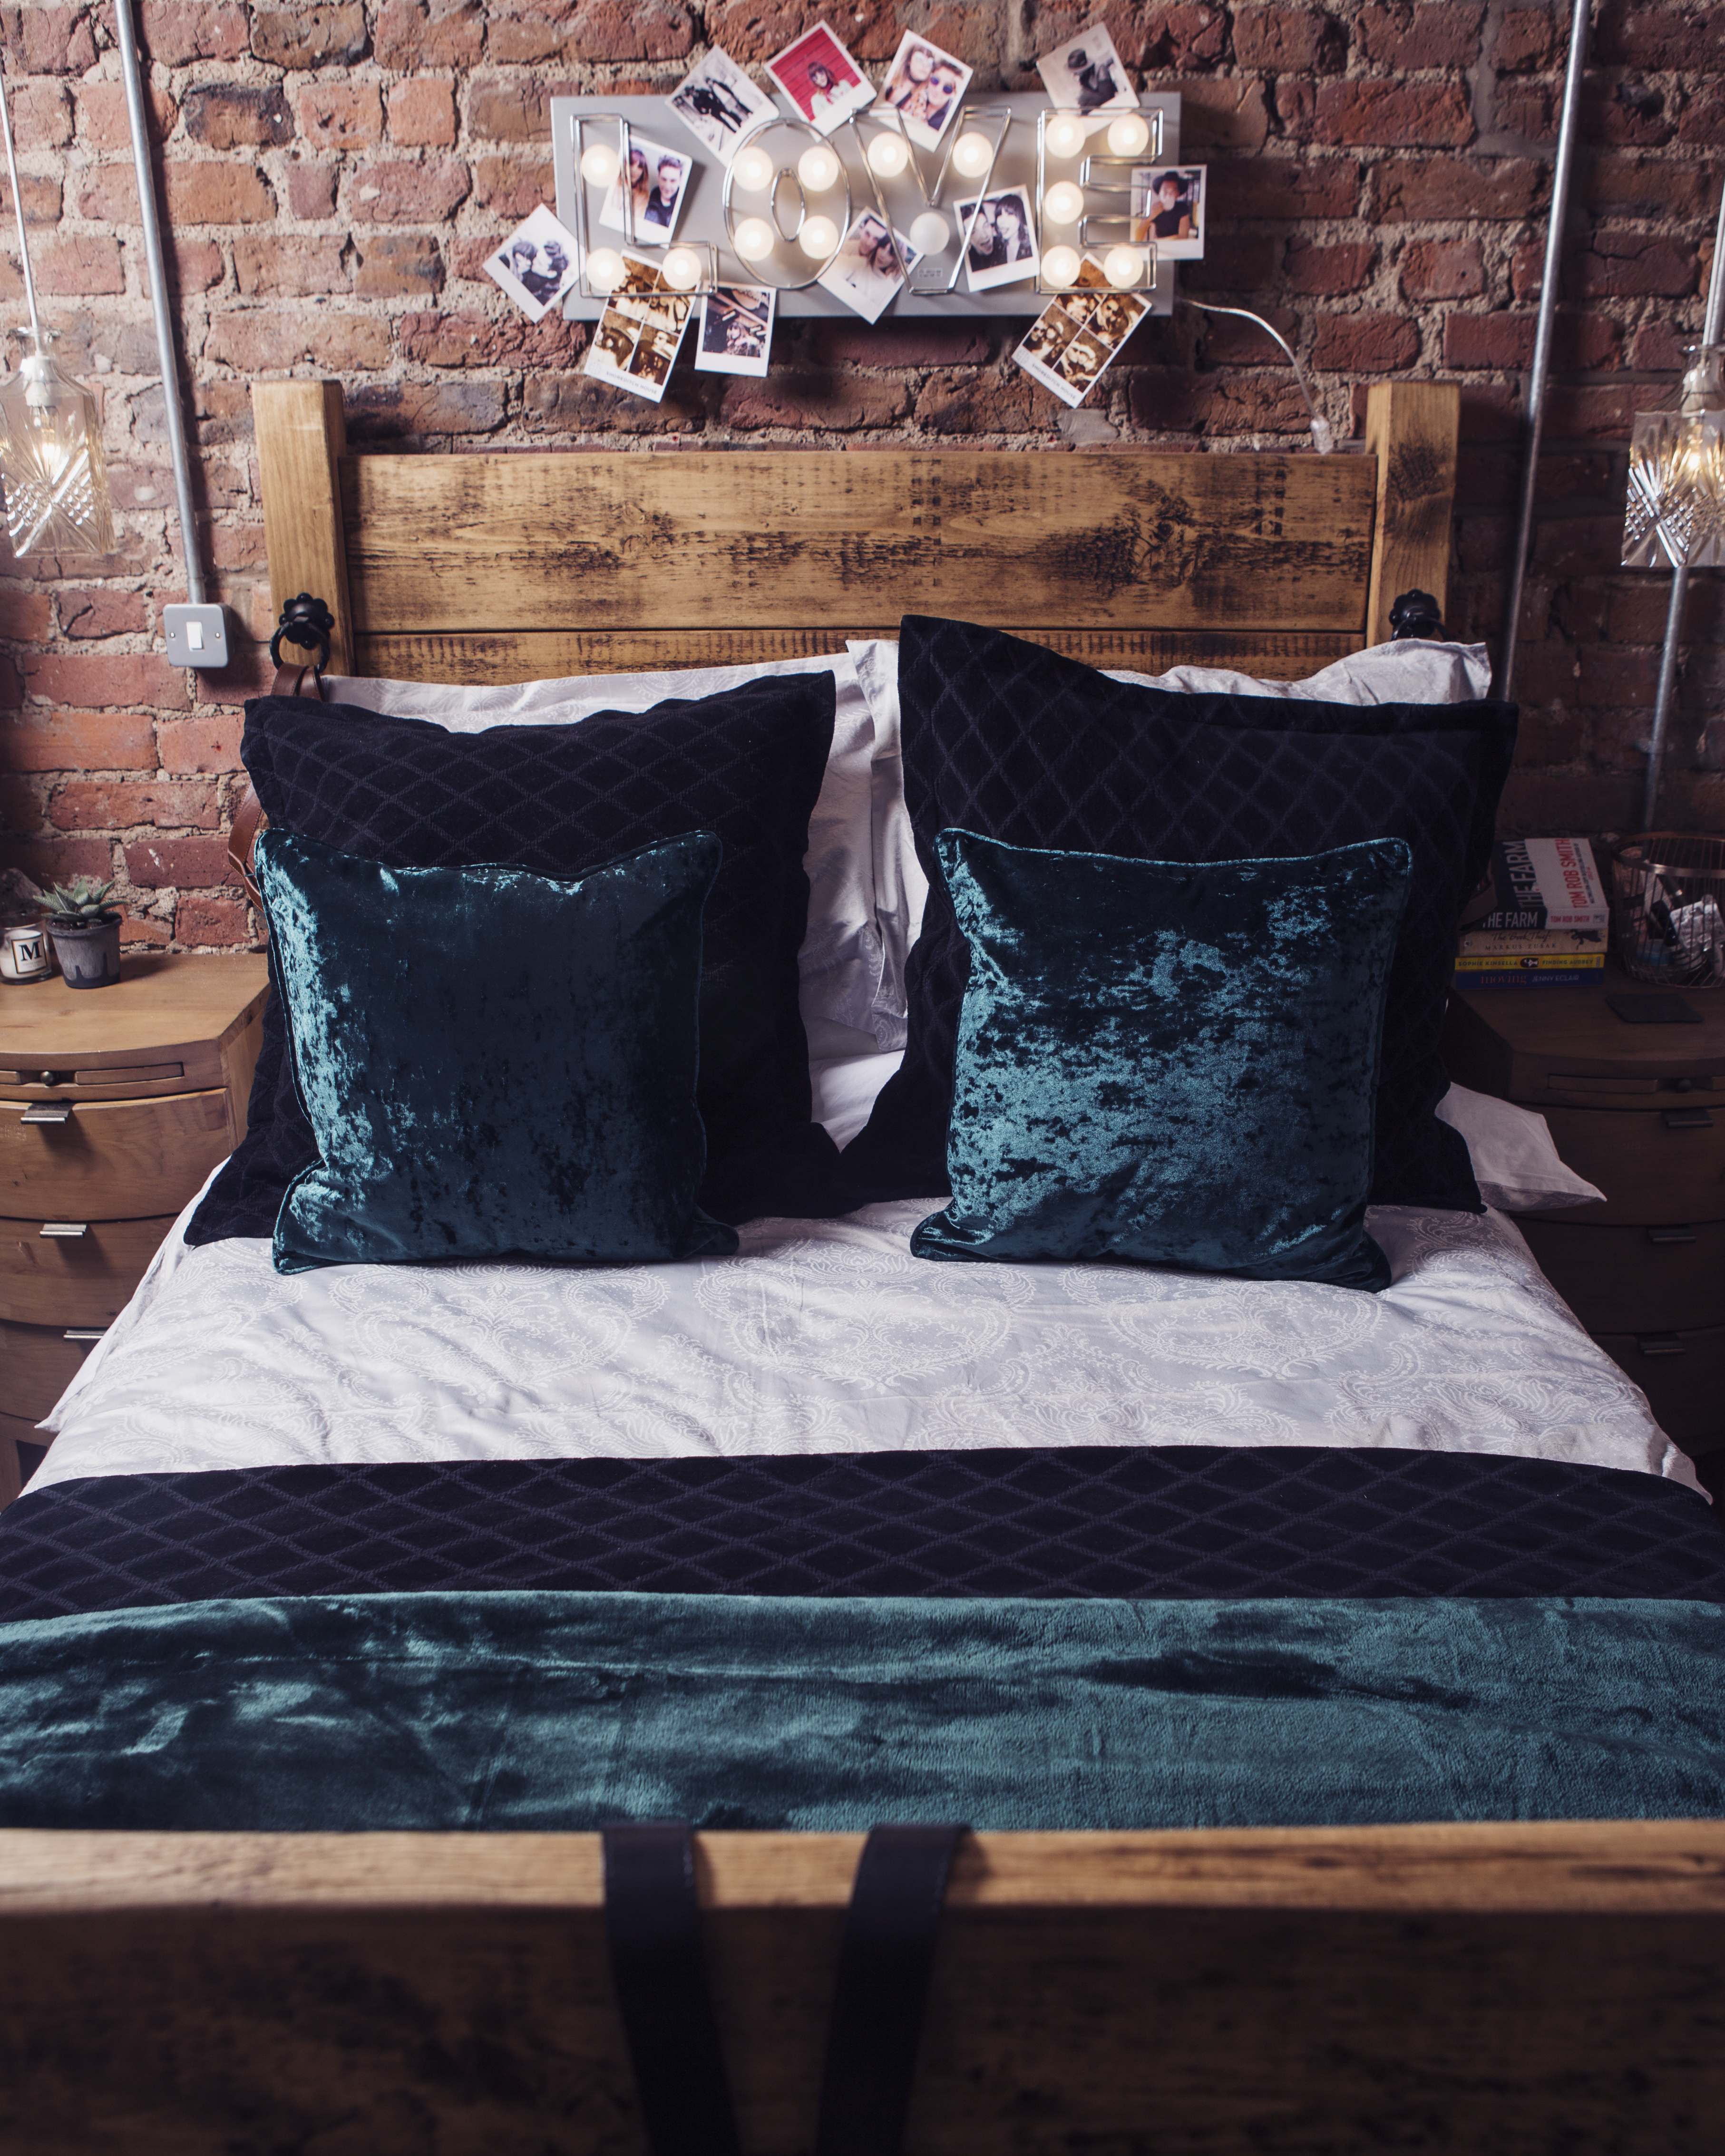 FESTIVE INTERIORS: CHRISTY ISABELLE BED LINEN WITH CHRISTY PARIS BED SPREAD